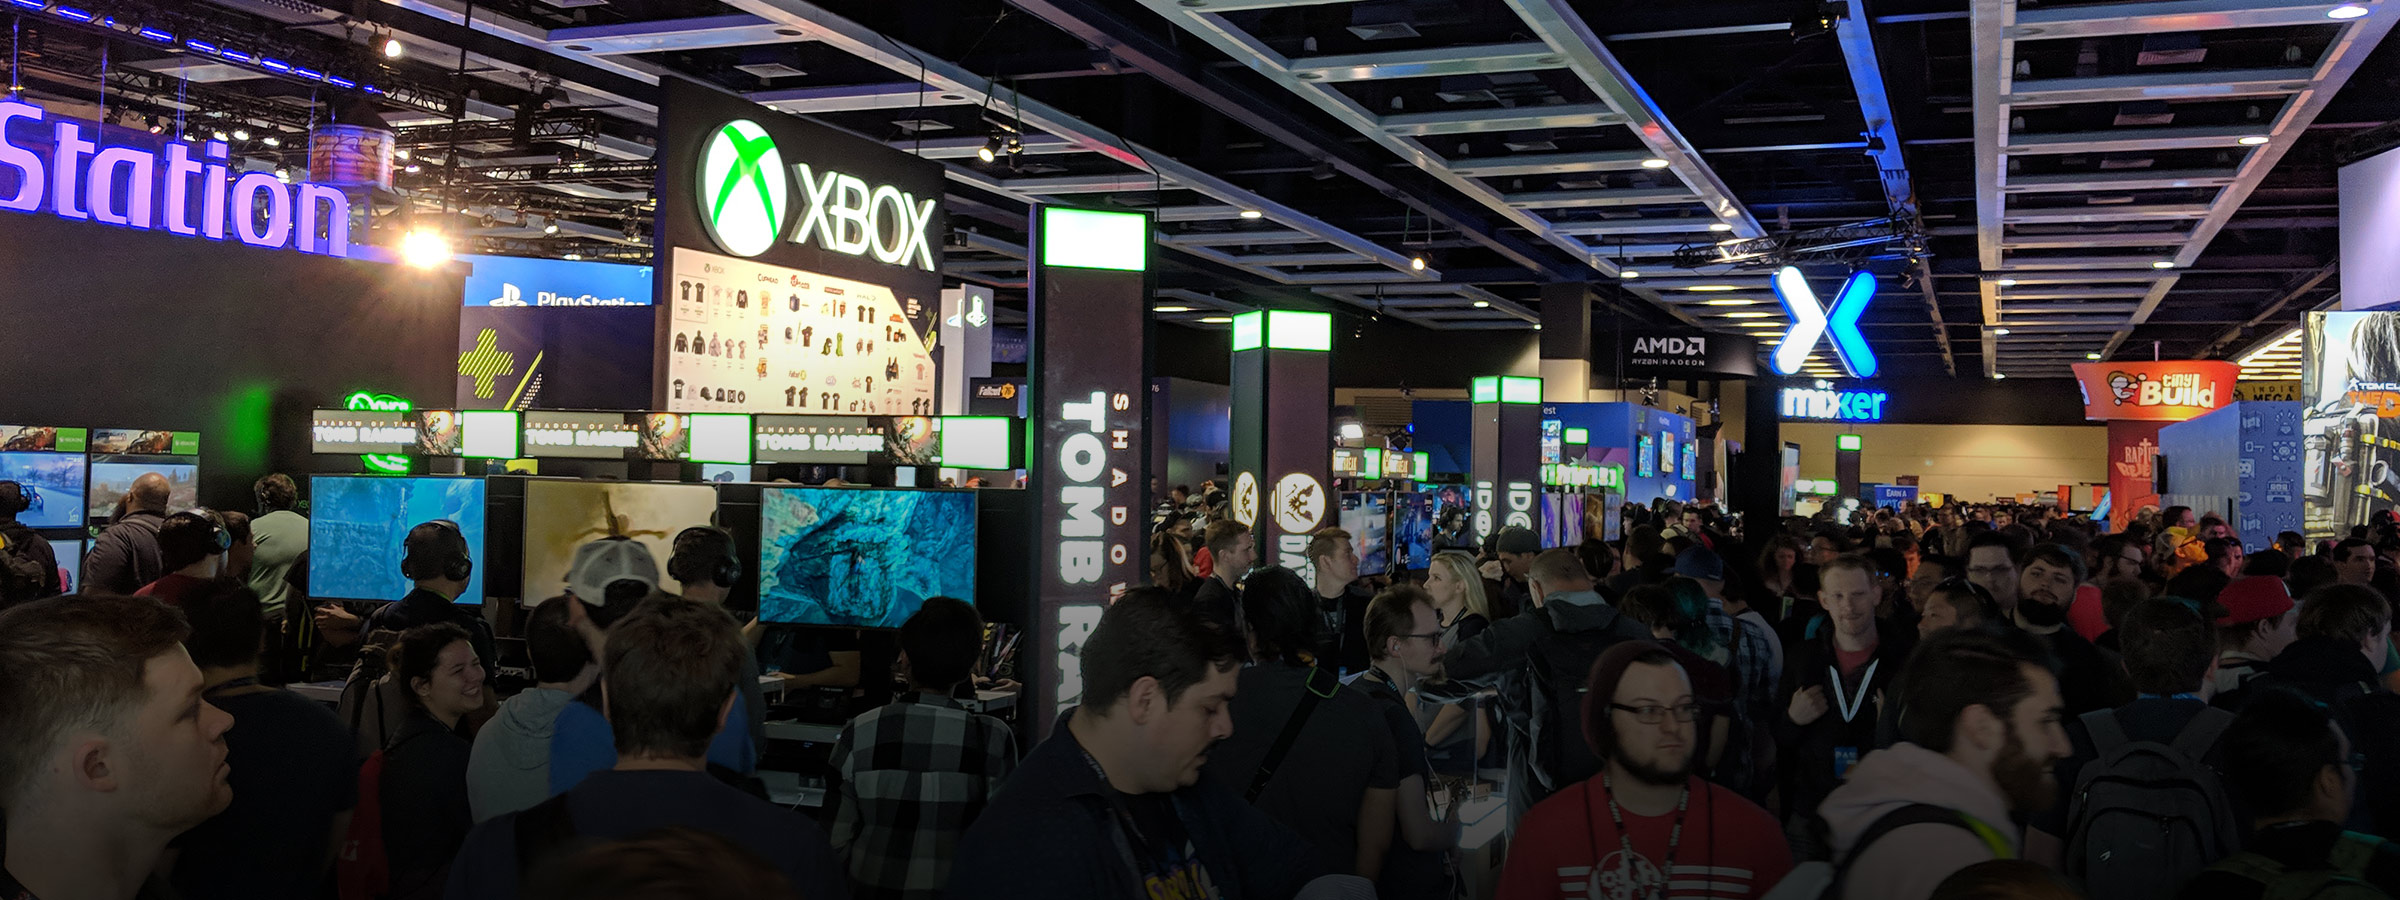 View above crowd at Xbox and Mixer booths in PAX West.